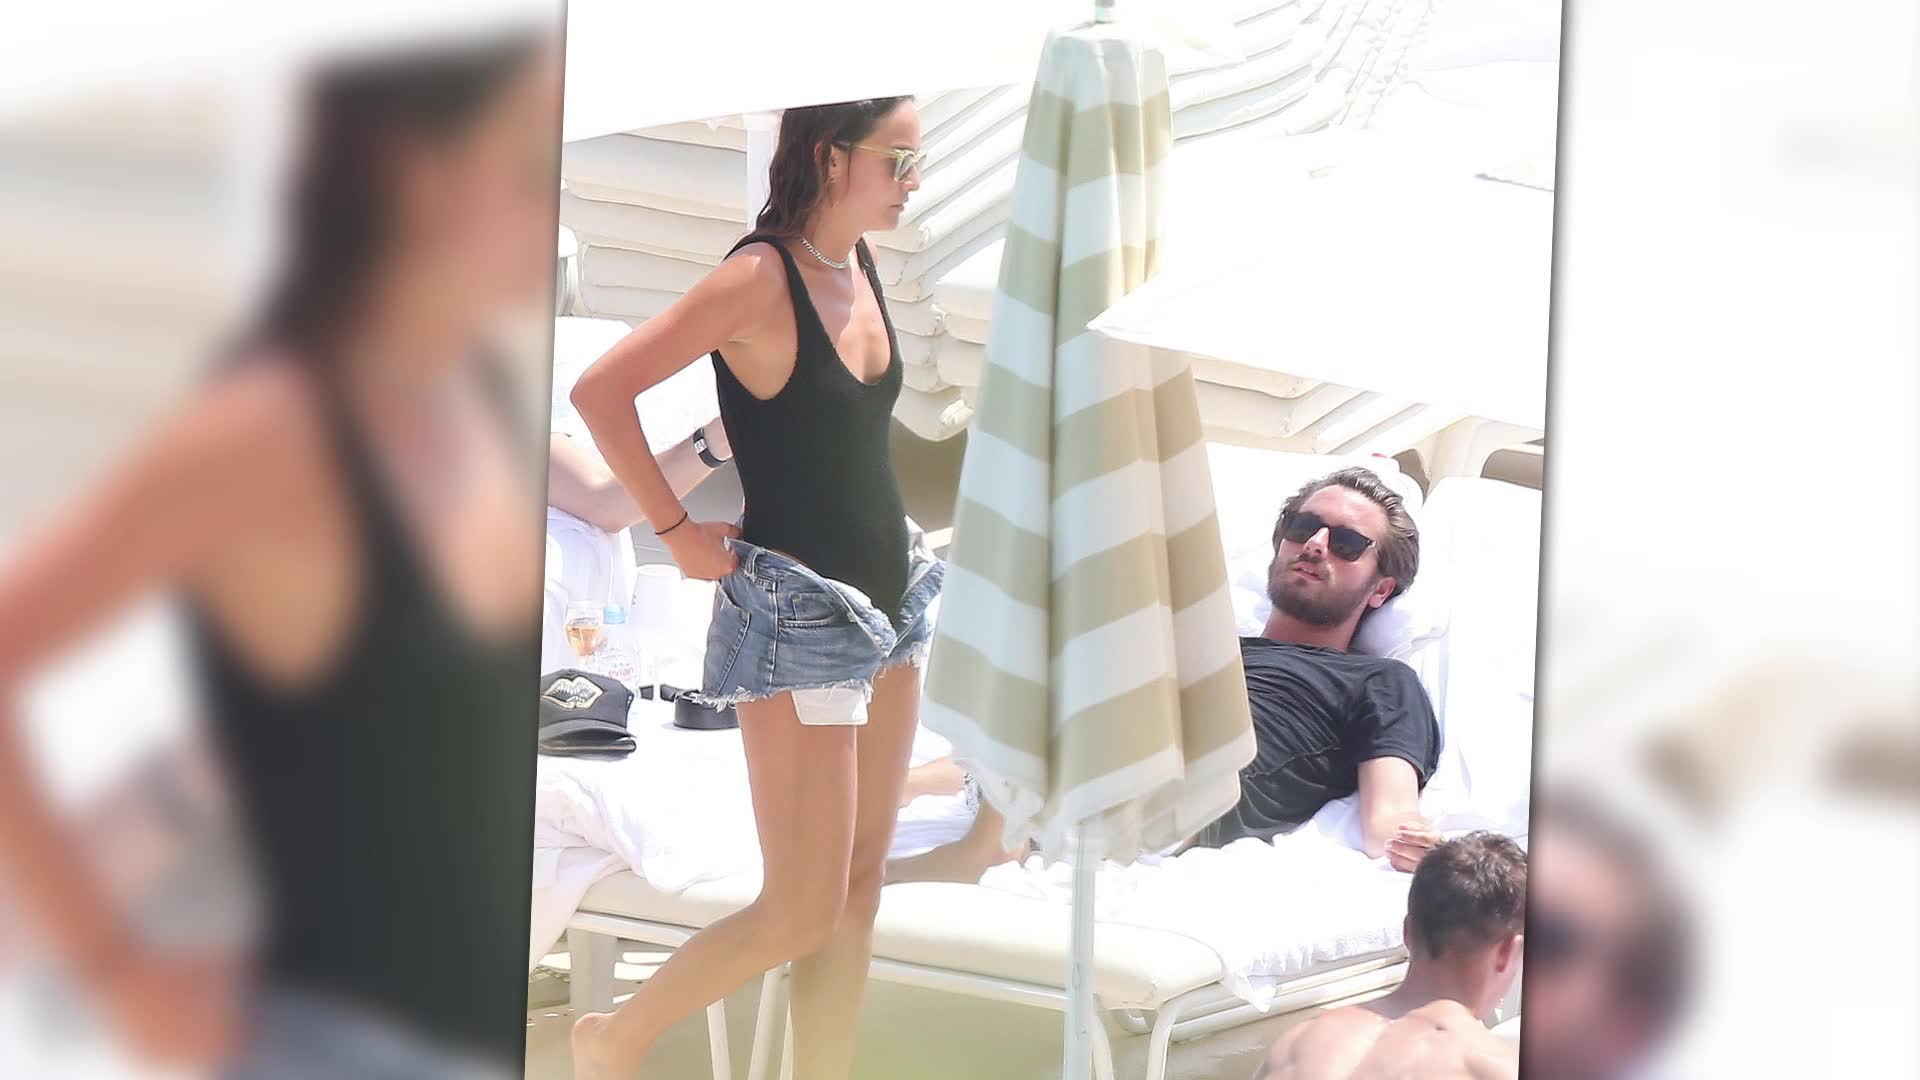 Scott Disick Hangs Out With Ex-Girlfriend in South of France